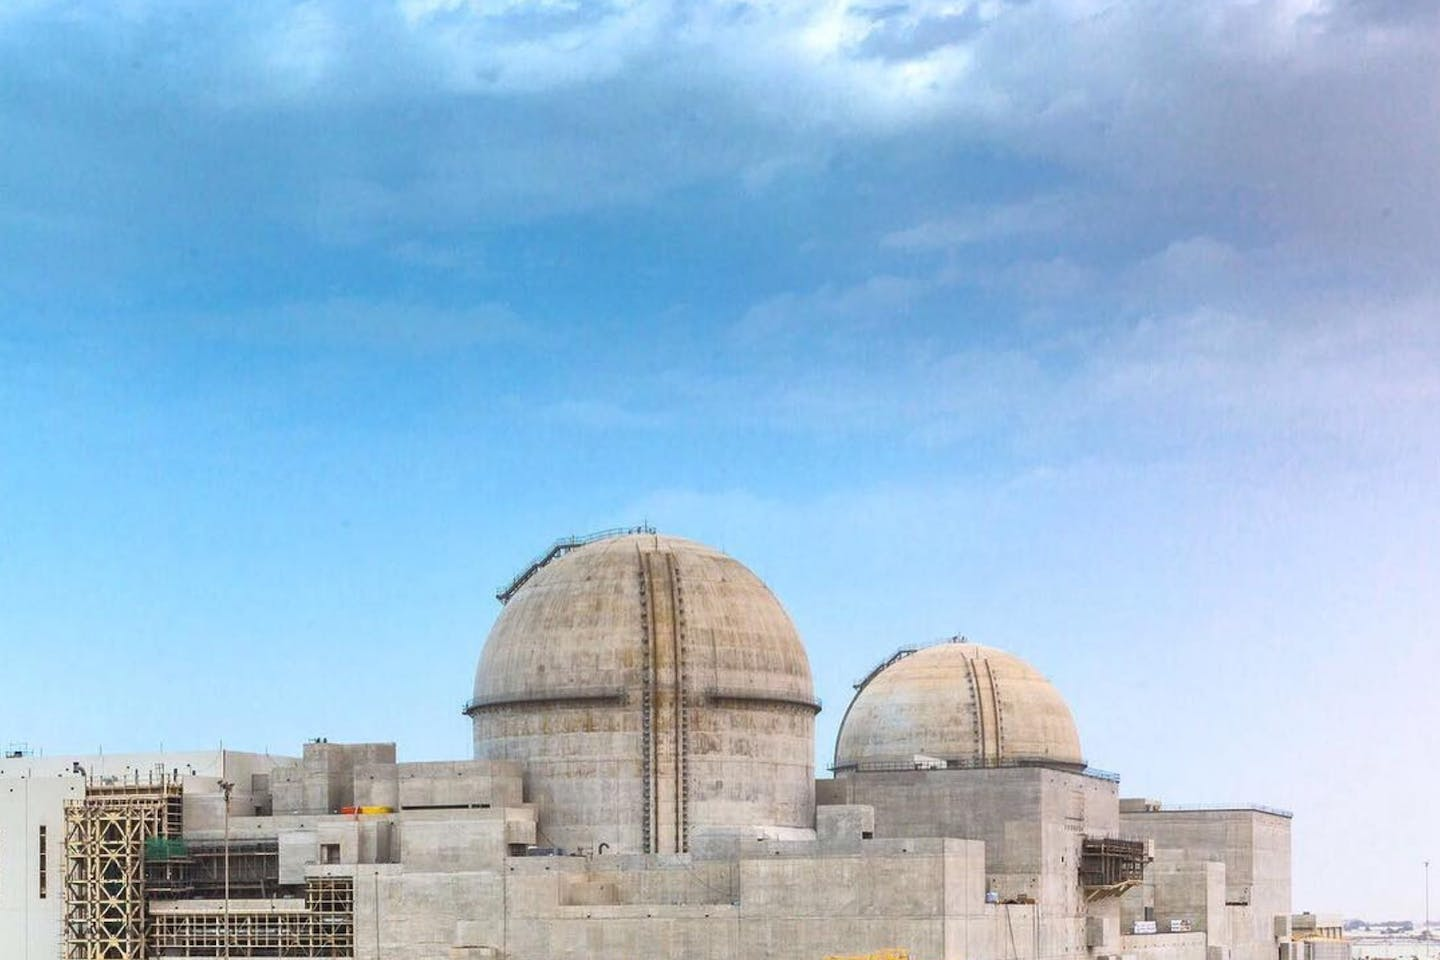 Barakah nuclear power station UAE